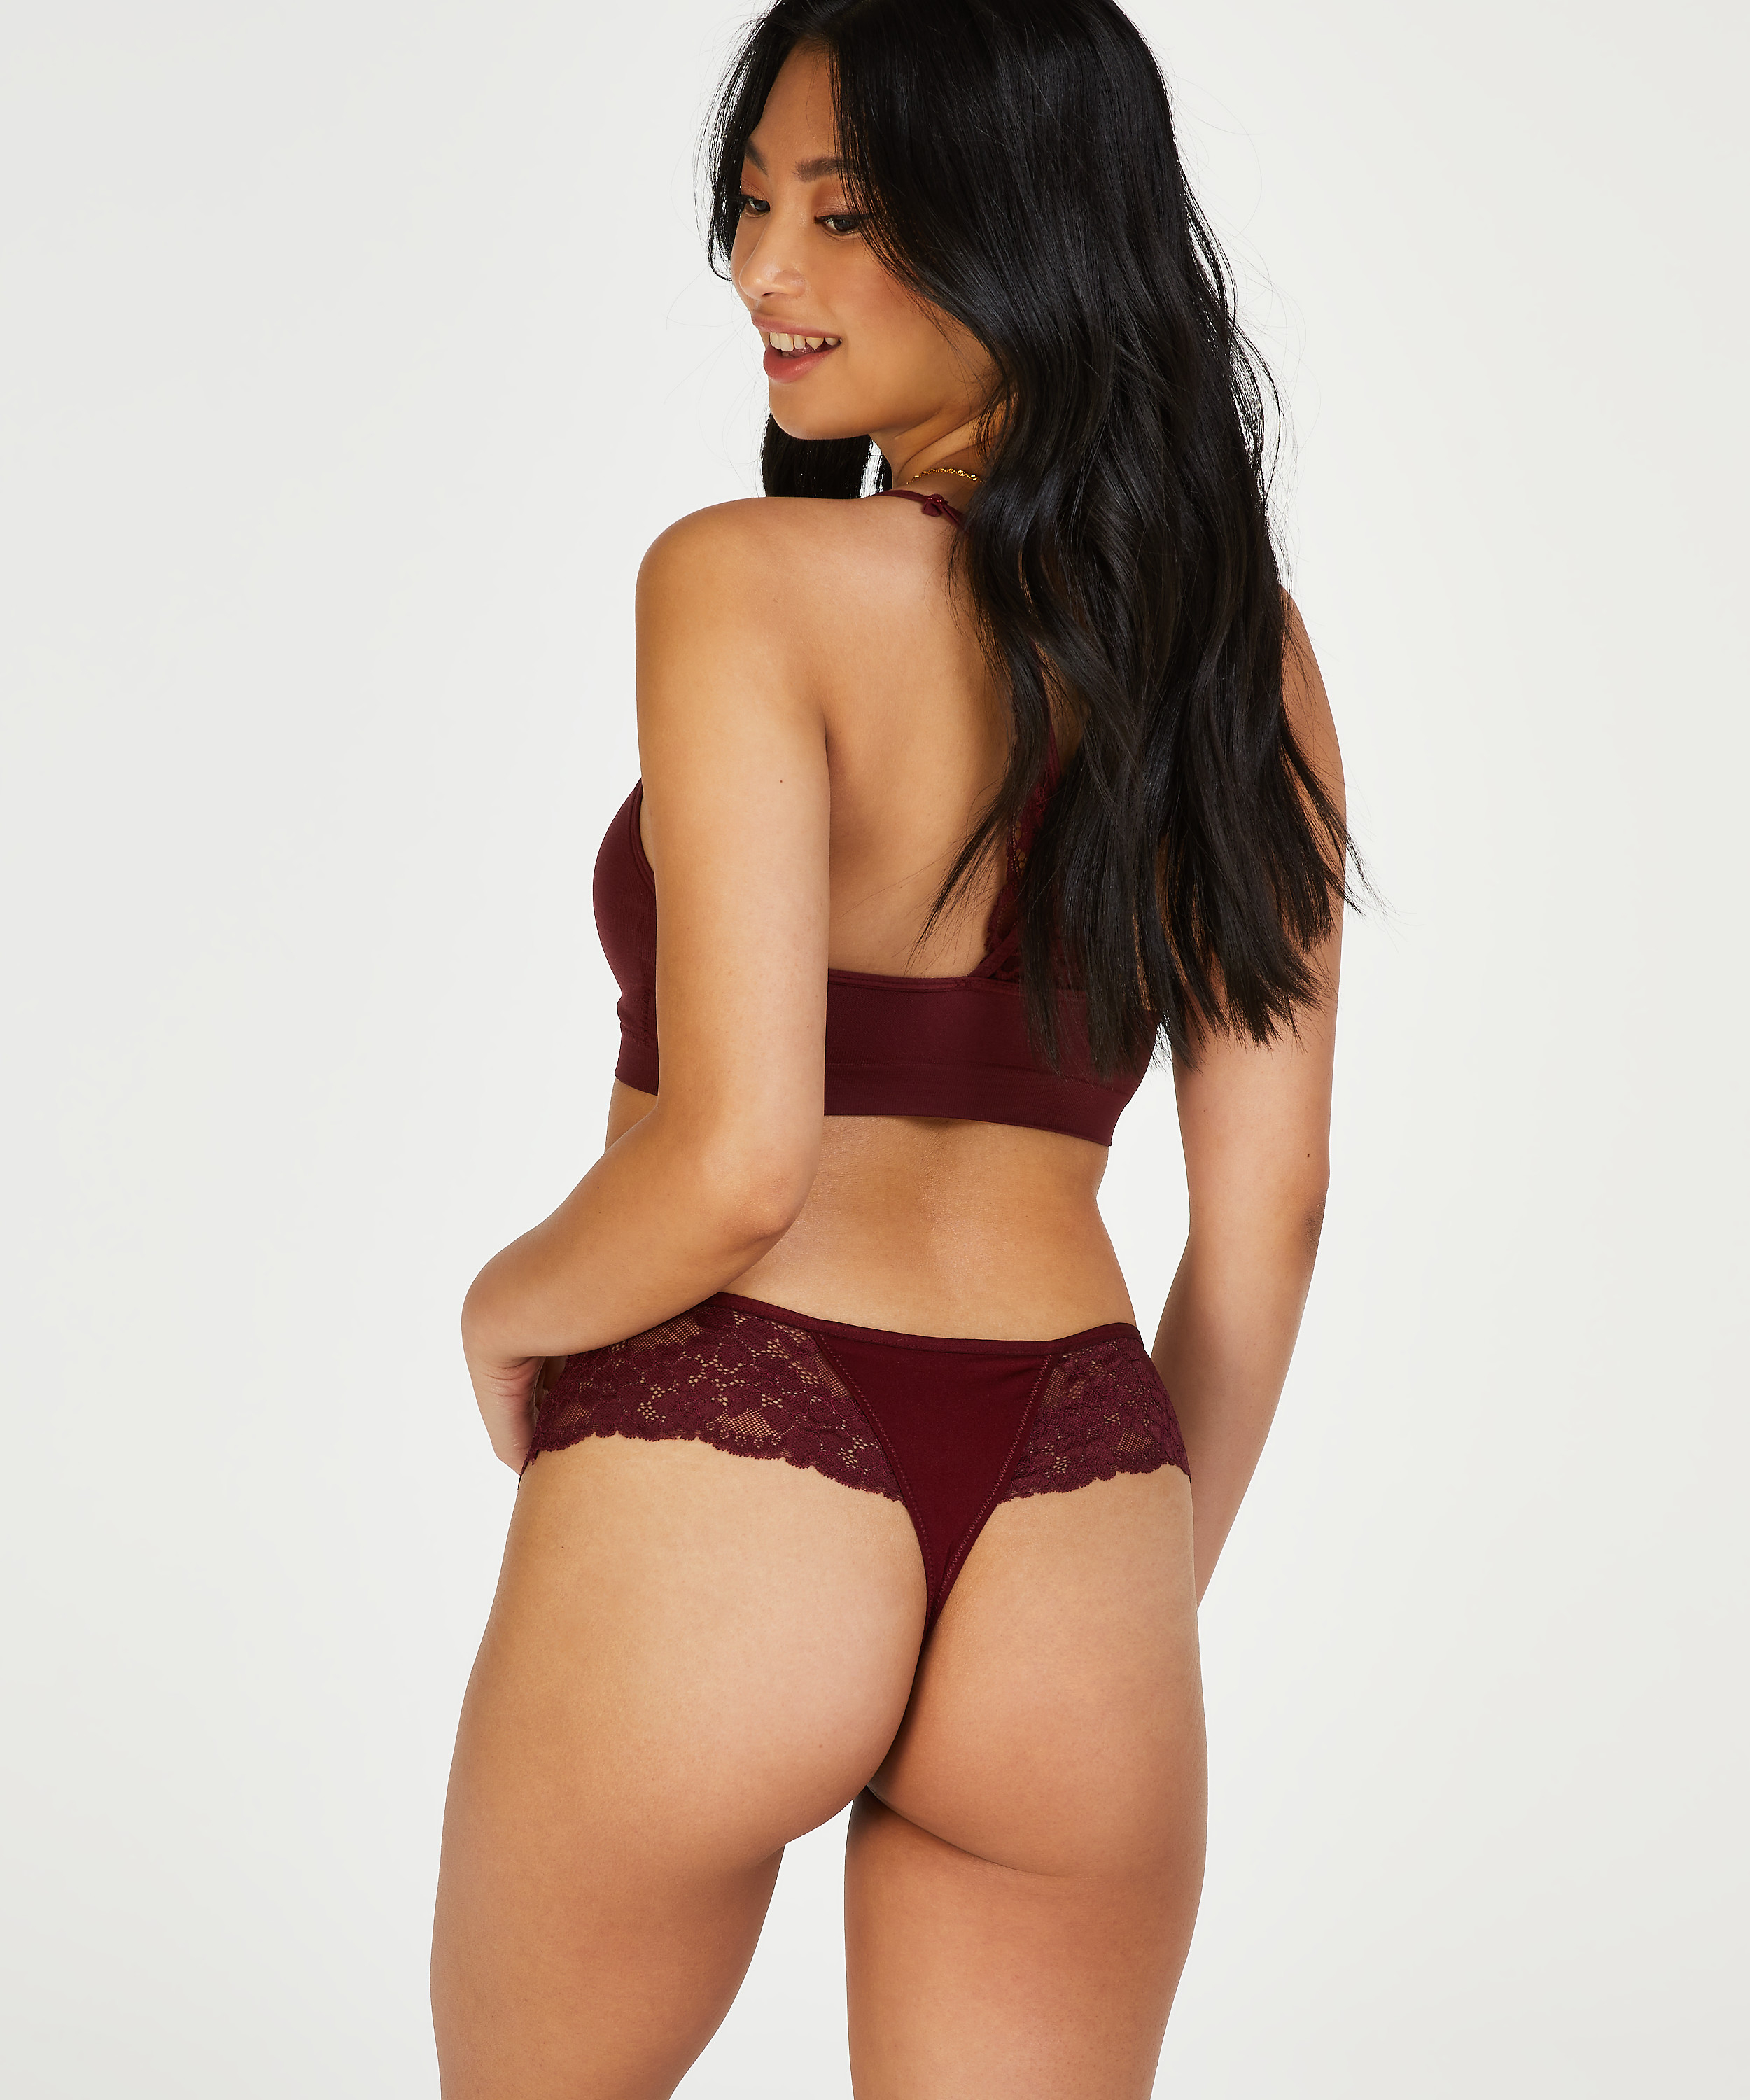 Boxerstring Nellie, Rood, main